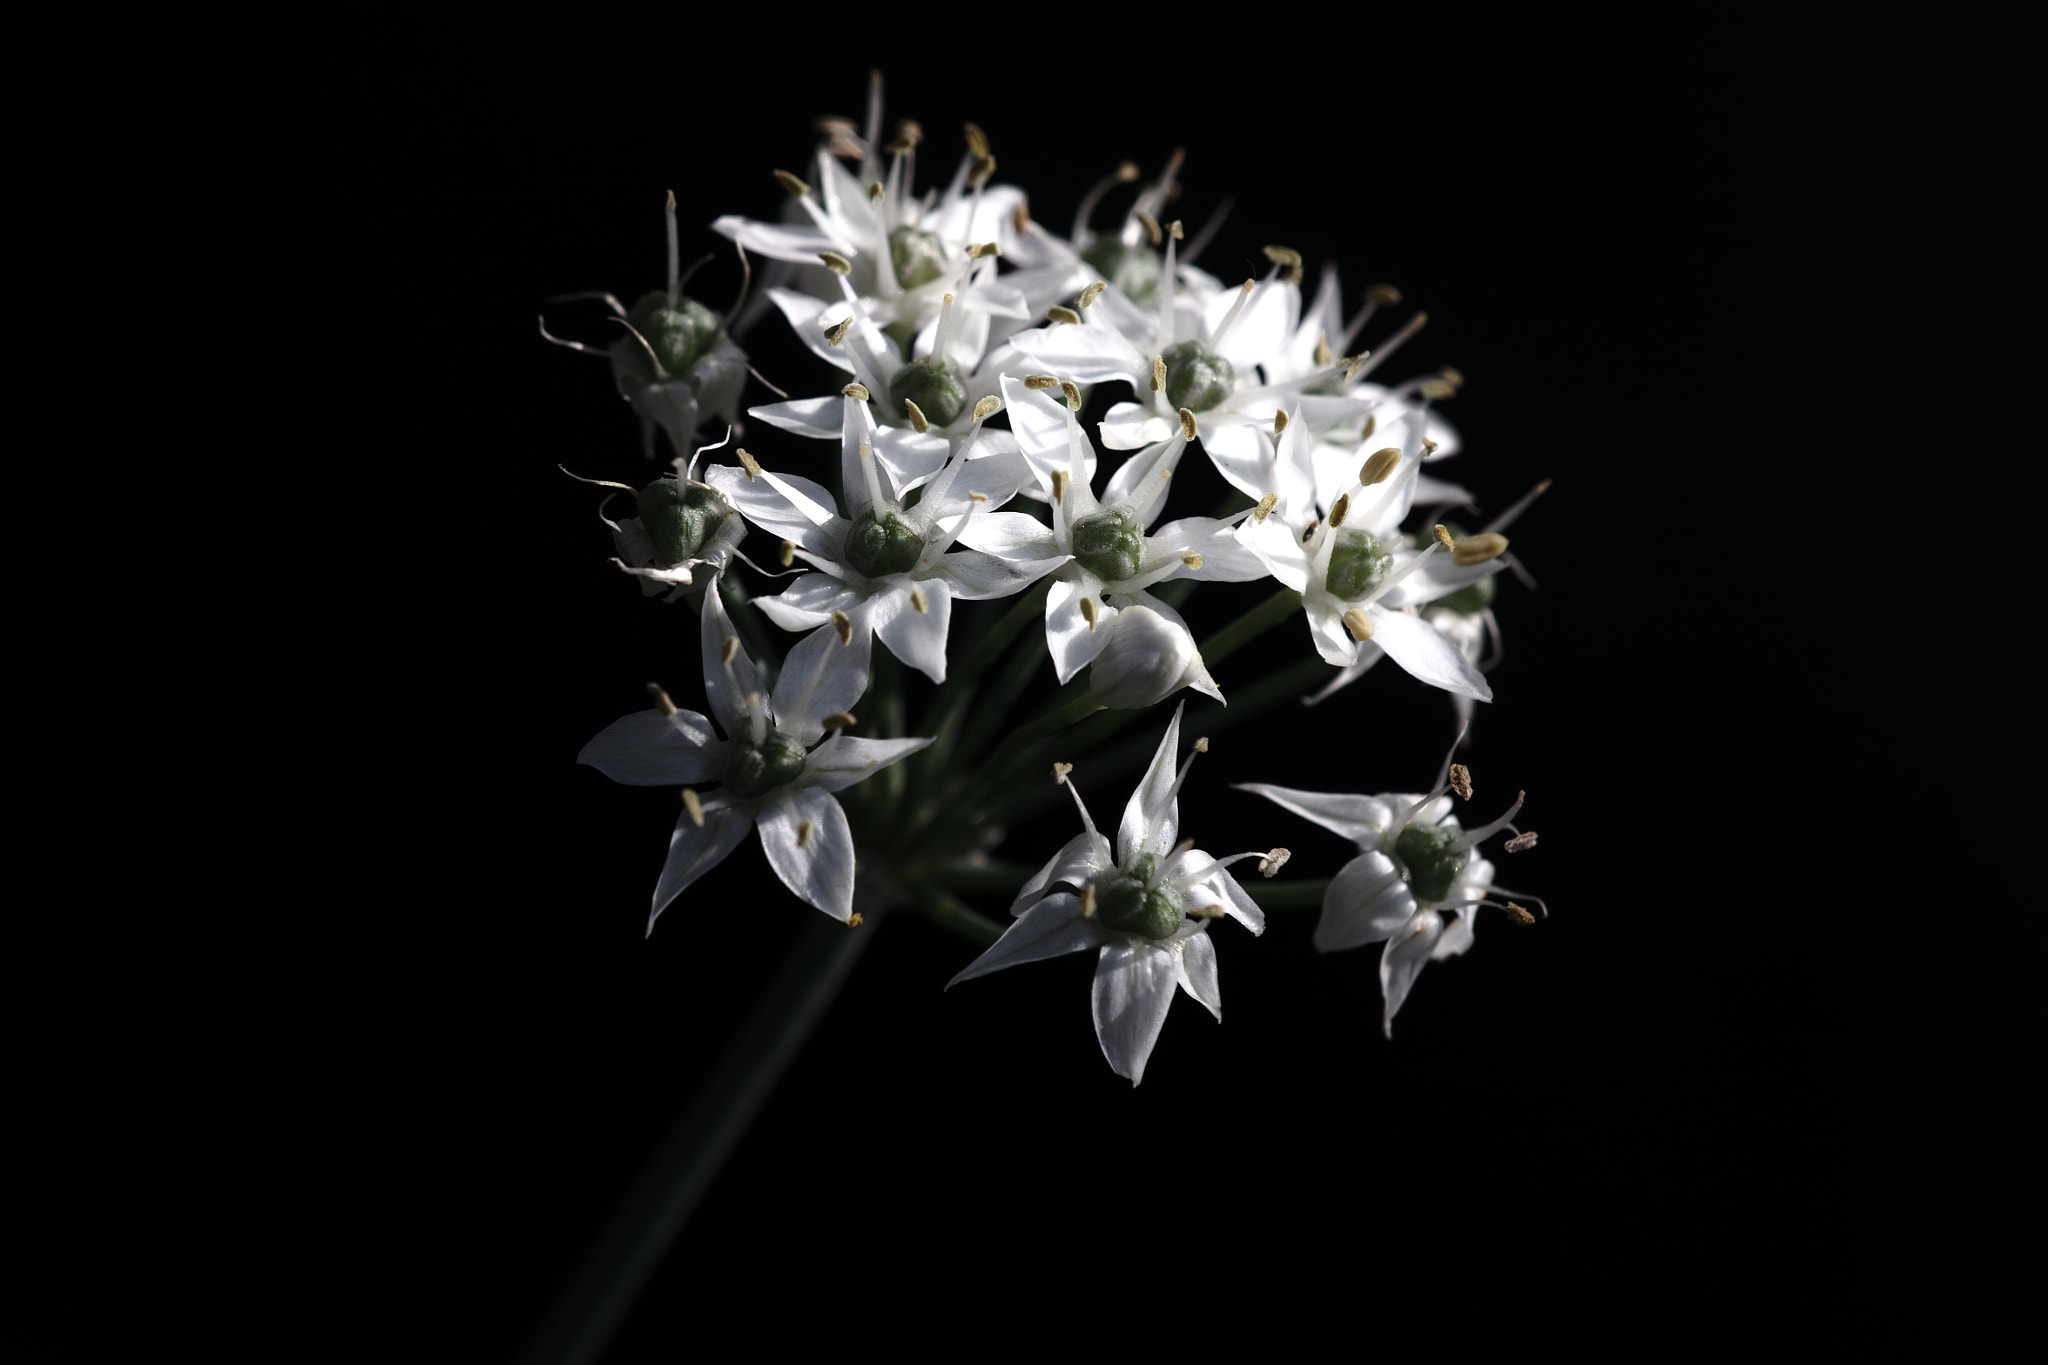 Photograph Wild Onion by halfrain X3 on 500px